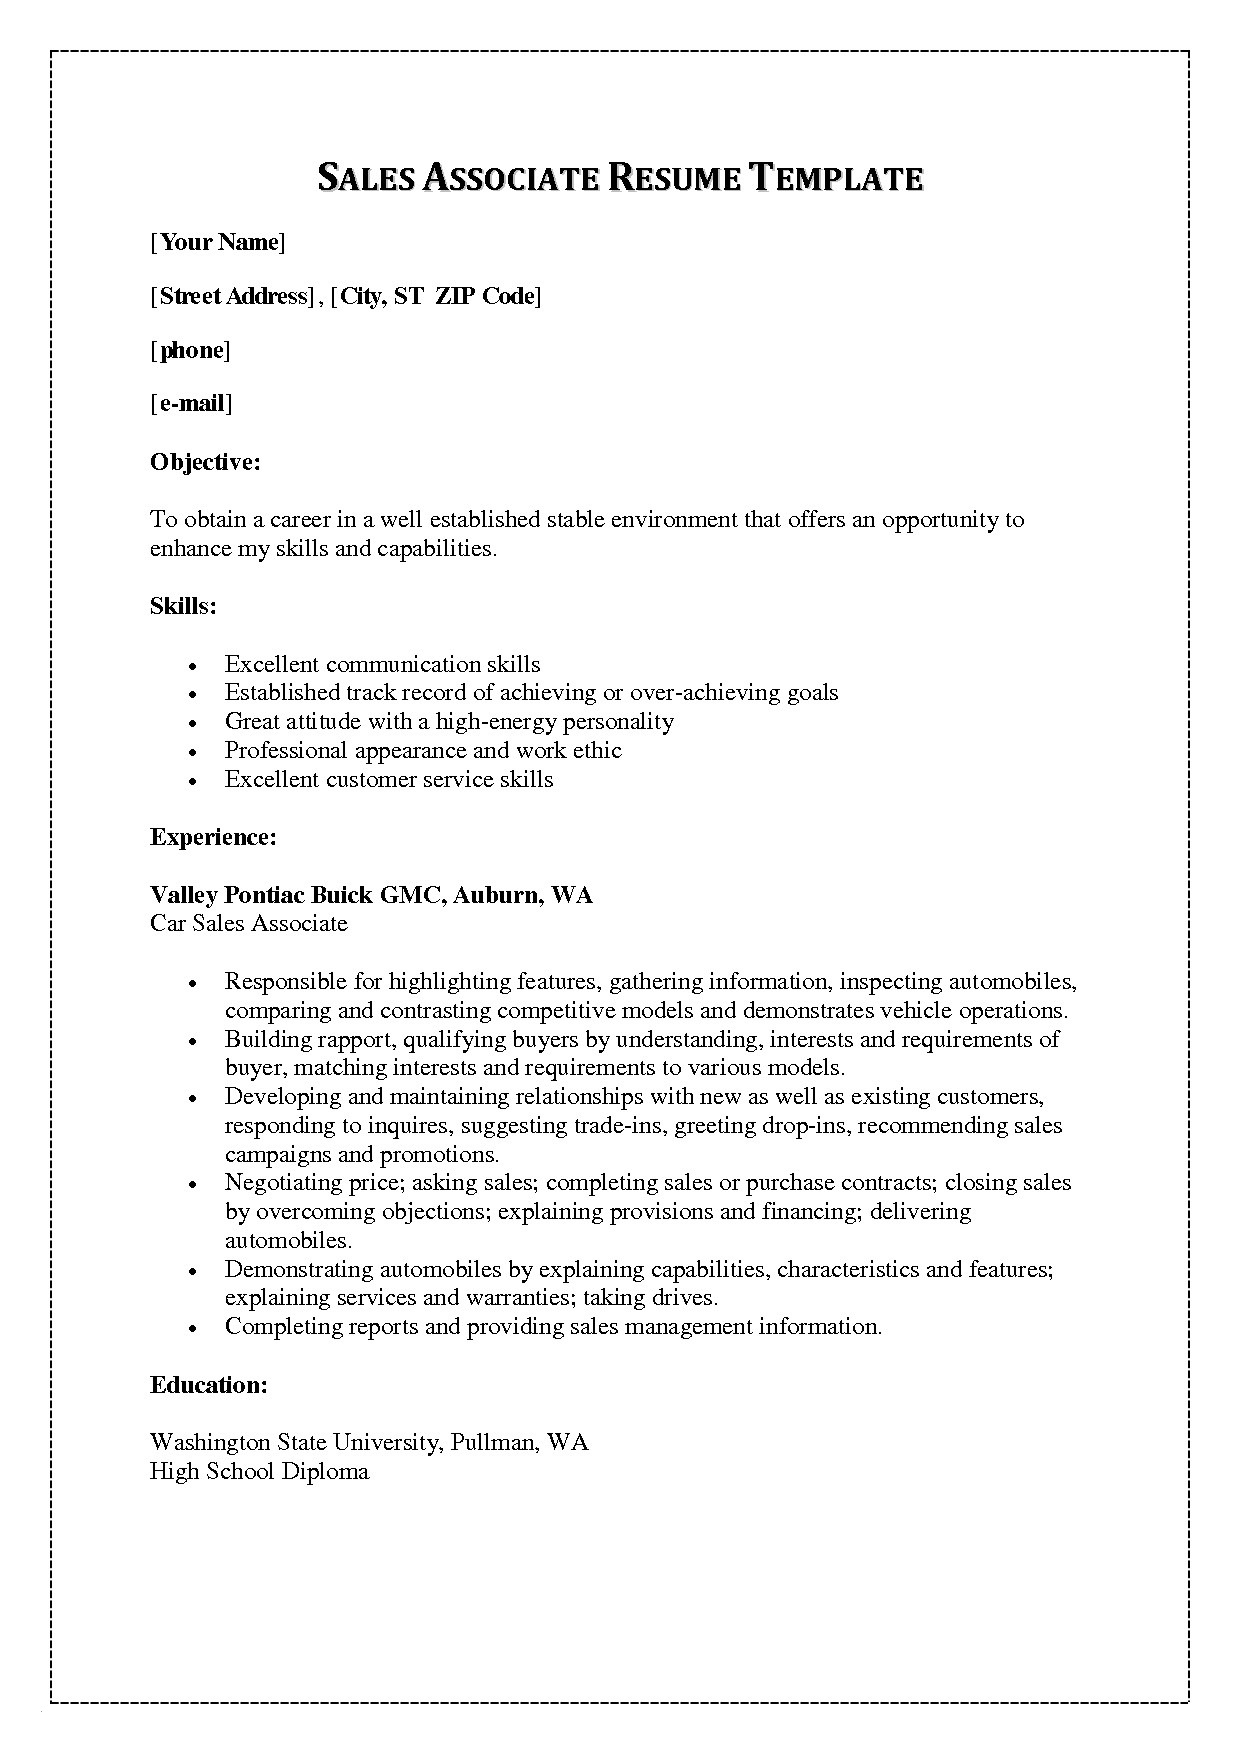 resume template for sales associate Collection-Resume Examples for Sales associate Best Awesome How Can I Do A Resume Best Resume 6-c